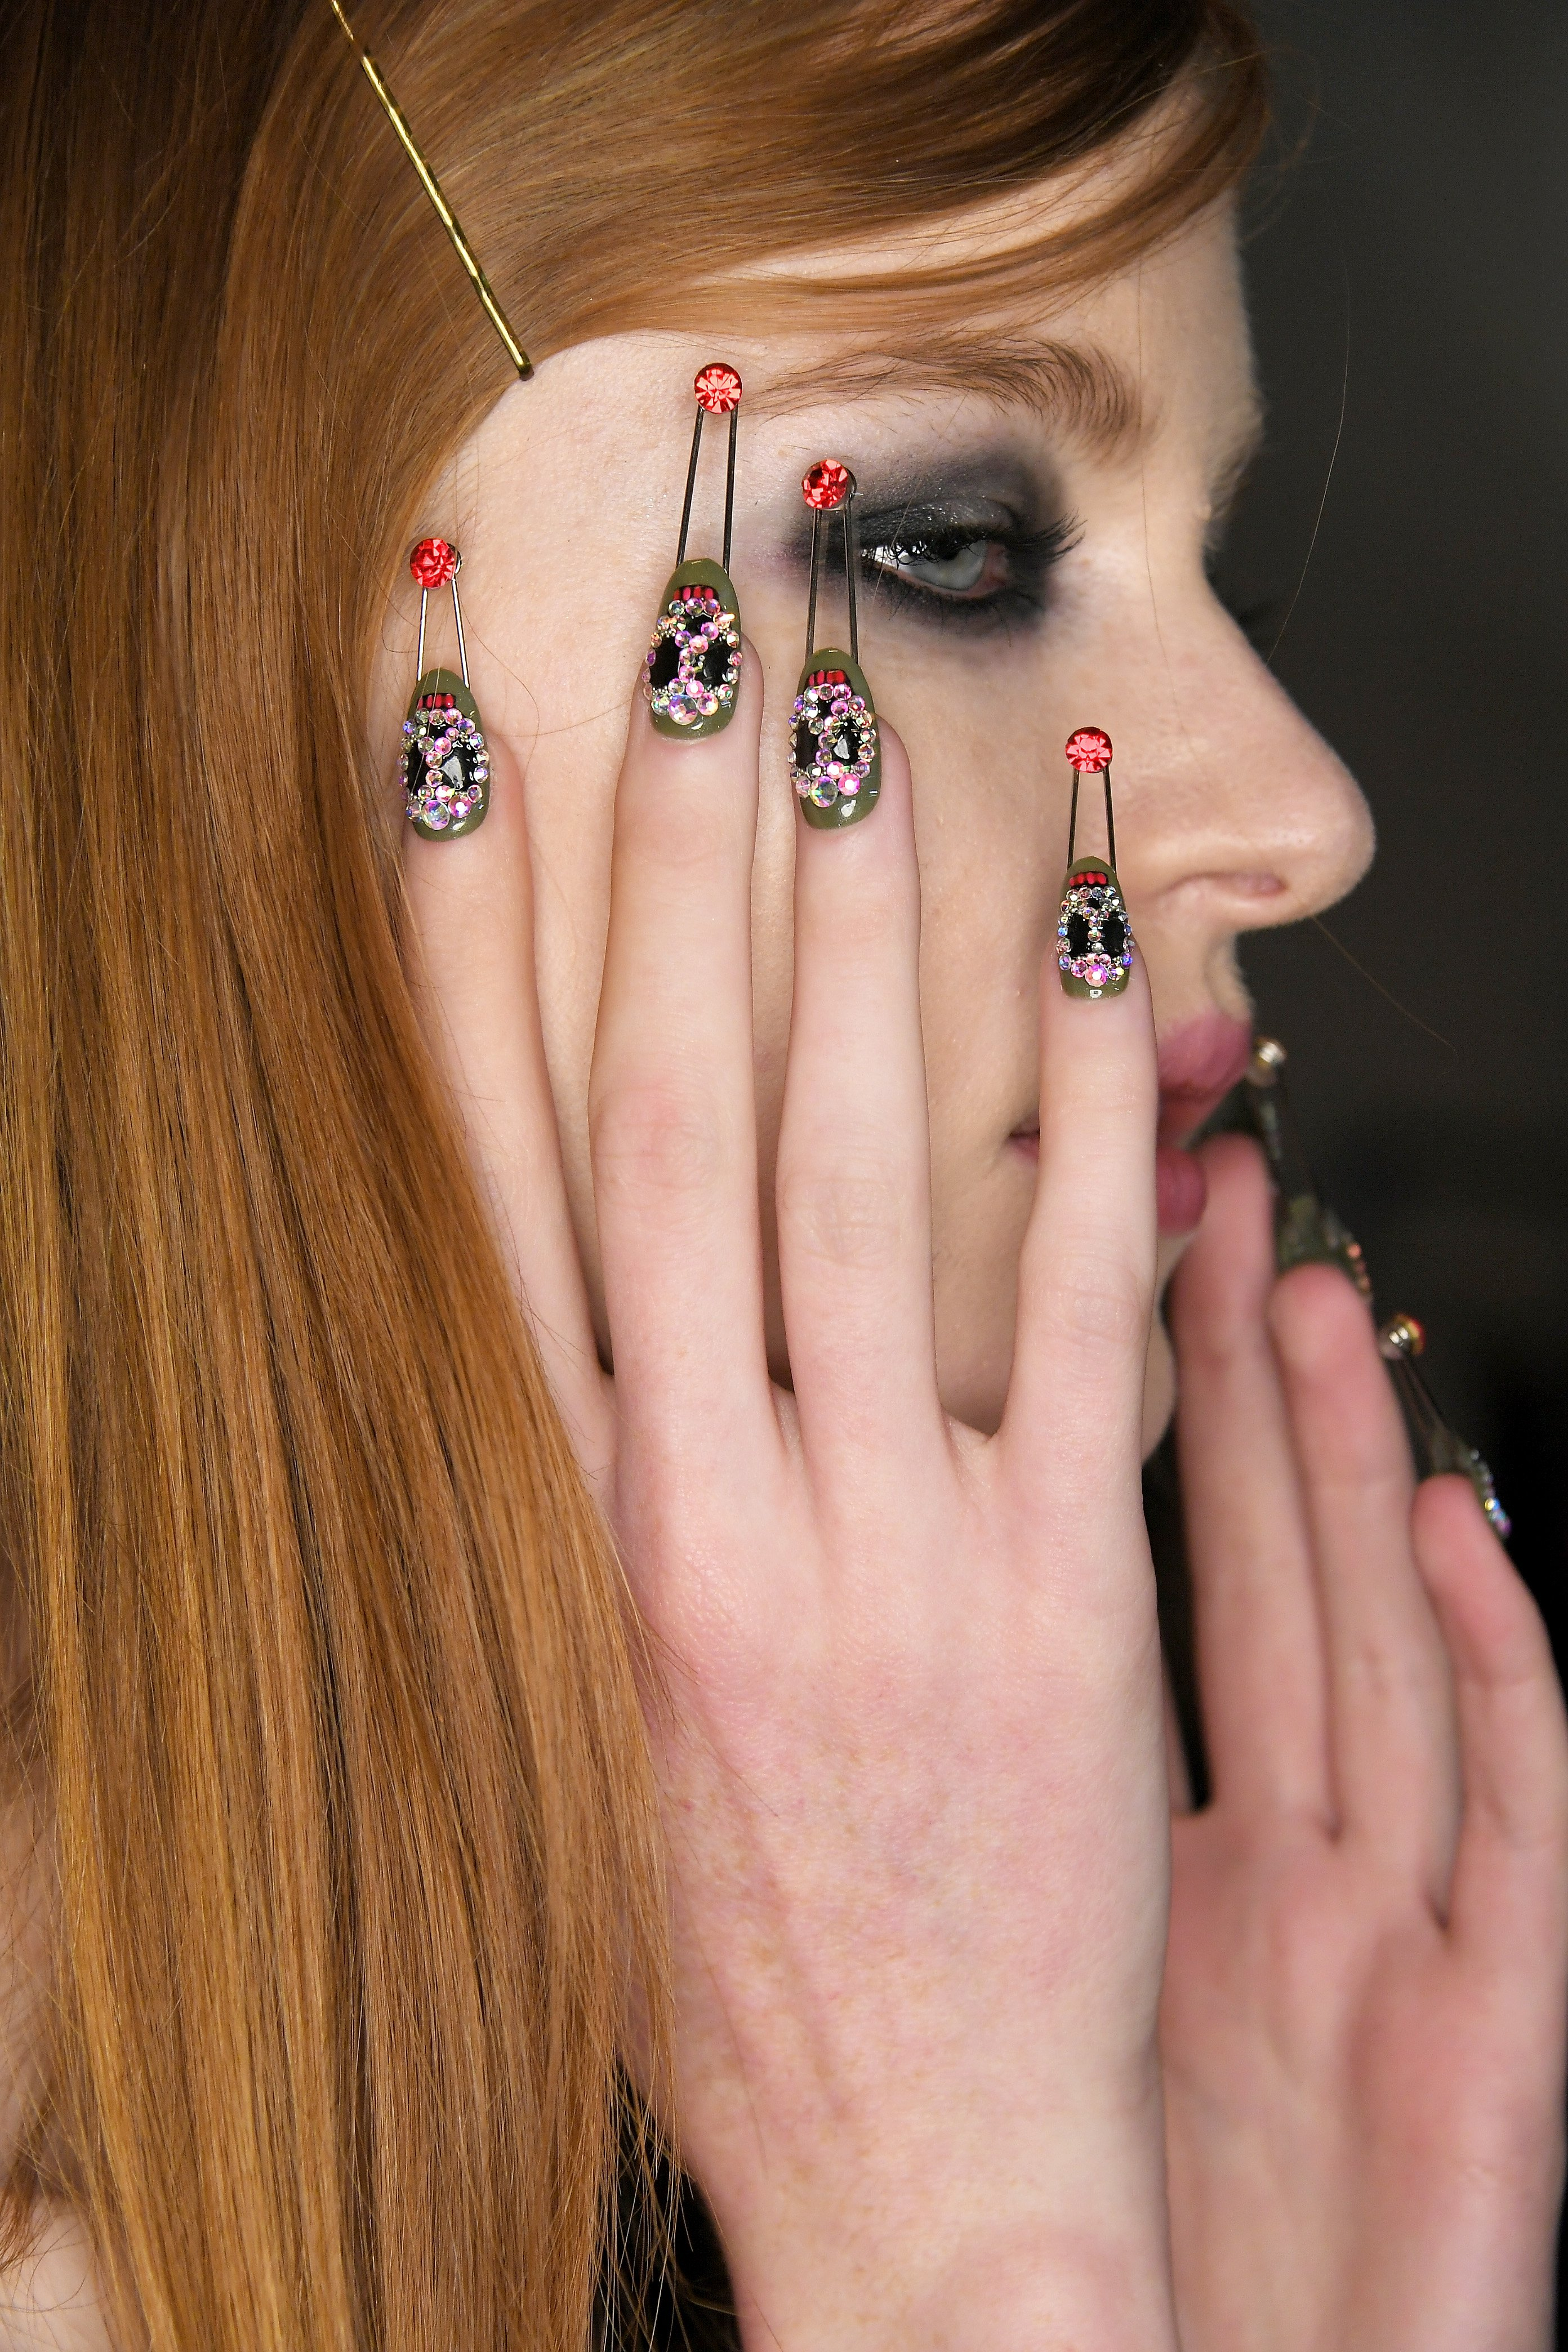 NYFW: CND, Johnson Hartig Reunite for Libertine Show, Punk Nails